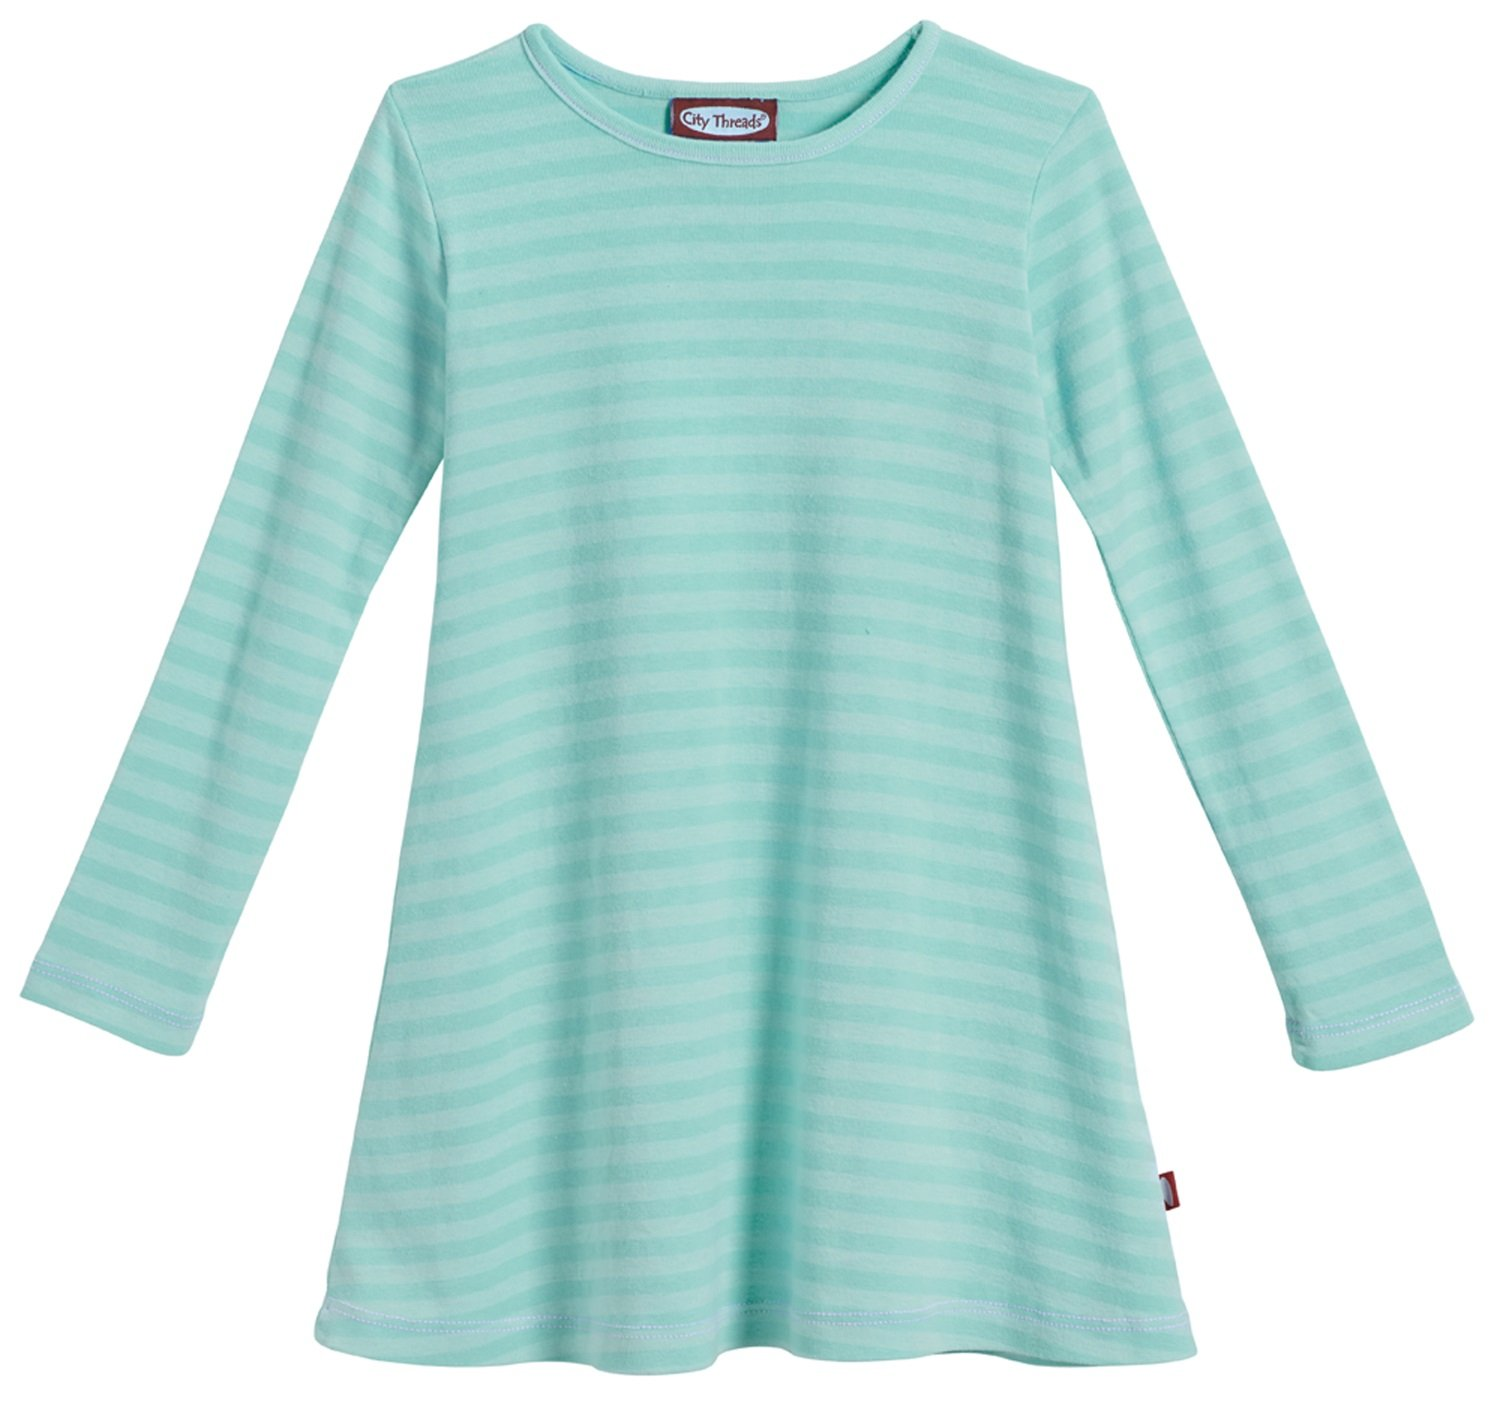 City Threads Little Girls' Cotton Long Sleeve Dress, Striped Wave, 6 by City Threads (Image #1)